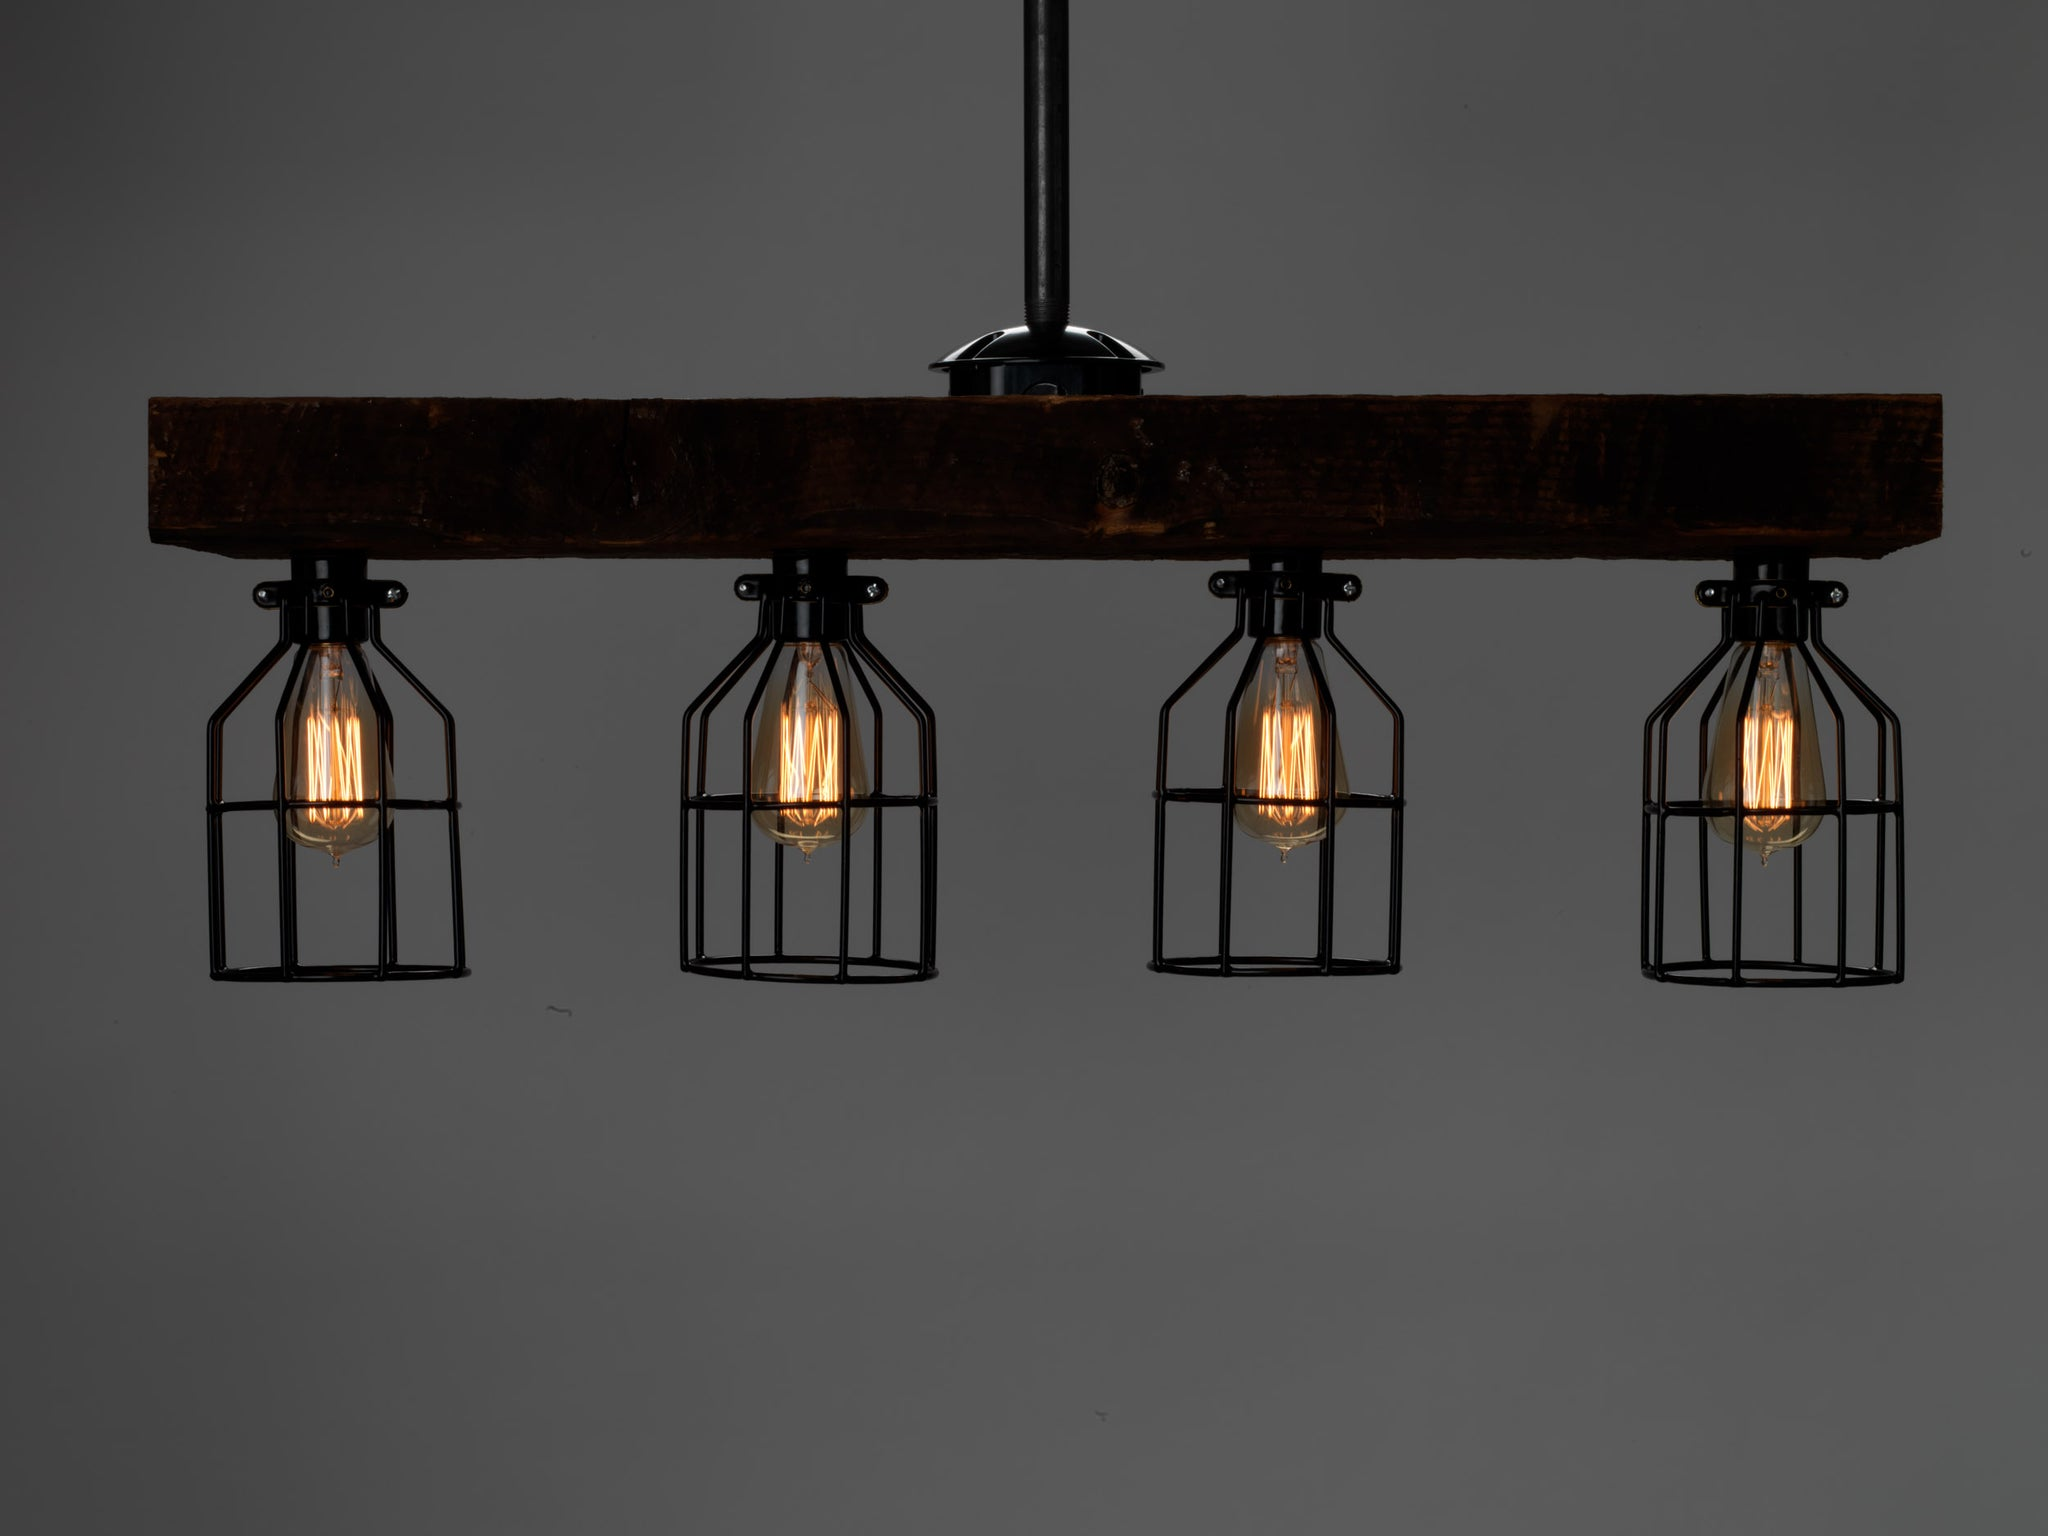 reclaimed lighting. 100 Year Old Reclaimed Wood Beam Light With Cages Lighting